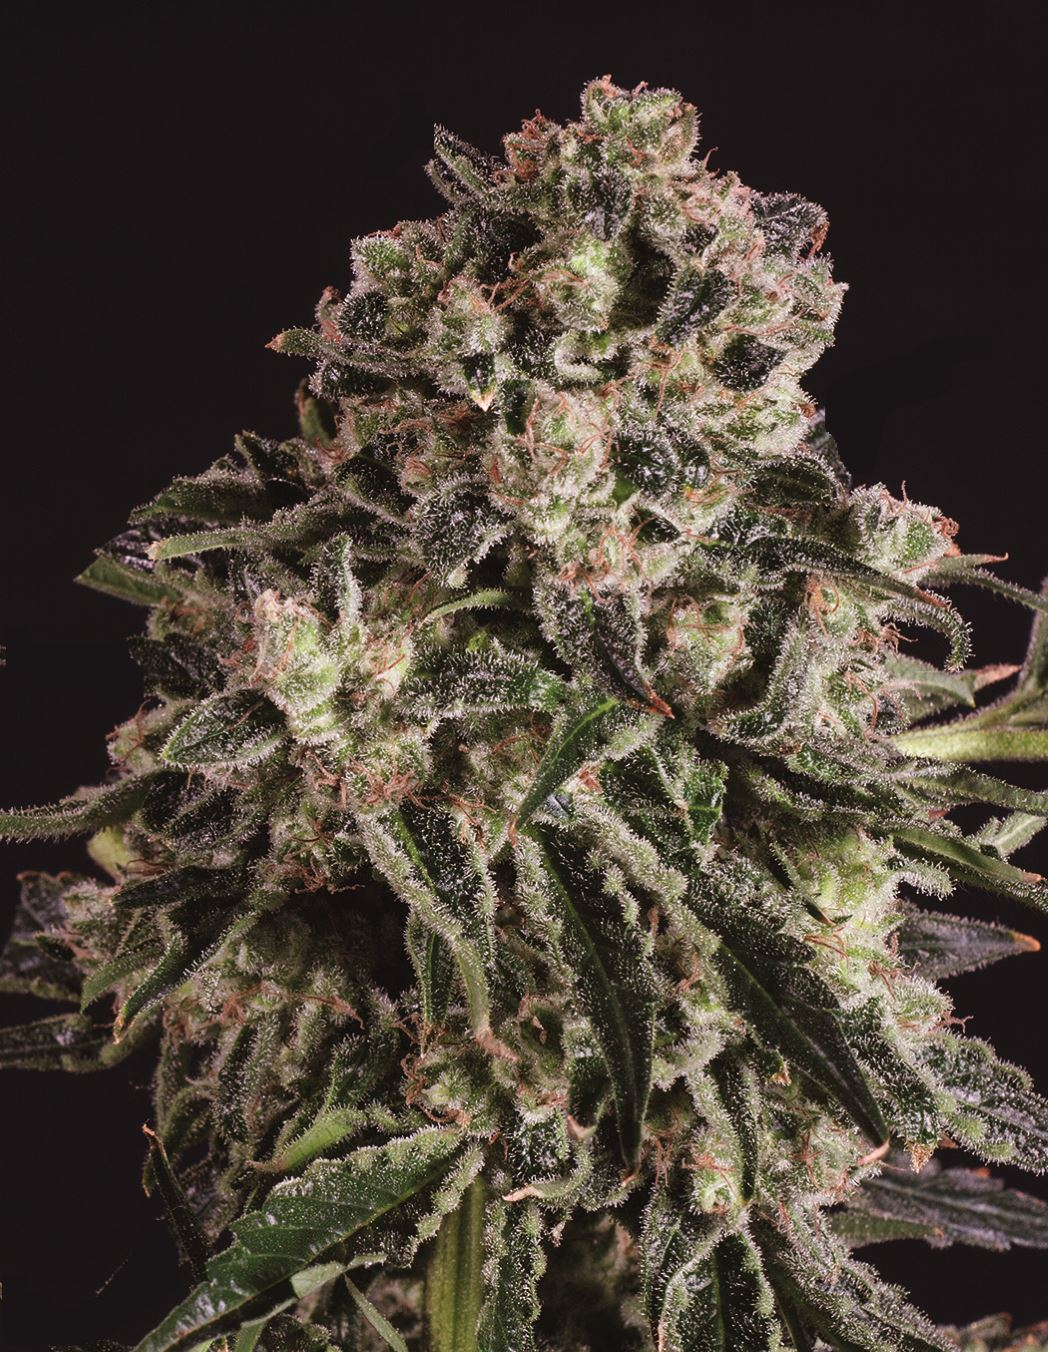 Black Critical x SCBDX Feminised Seeds